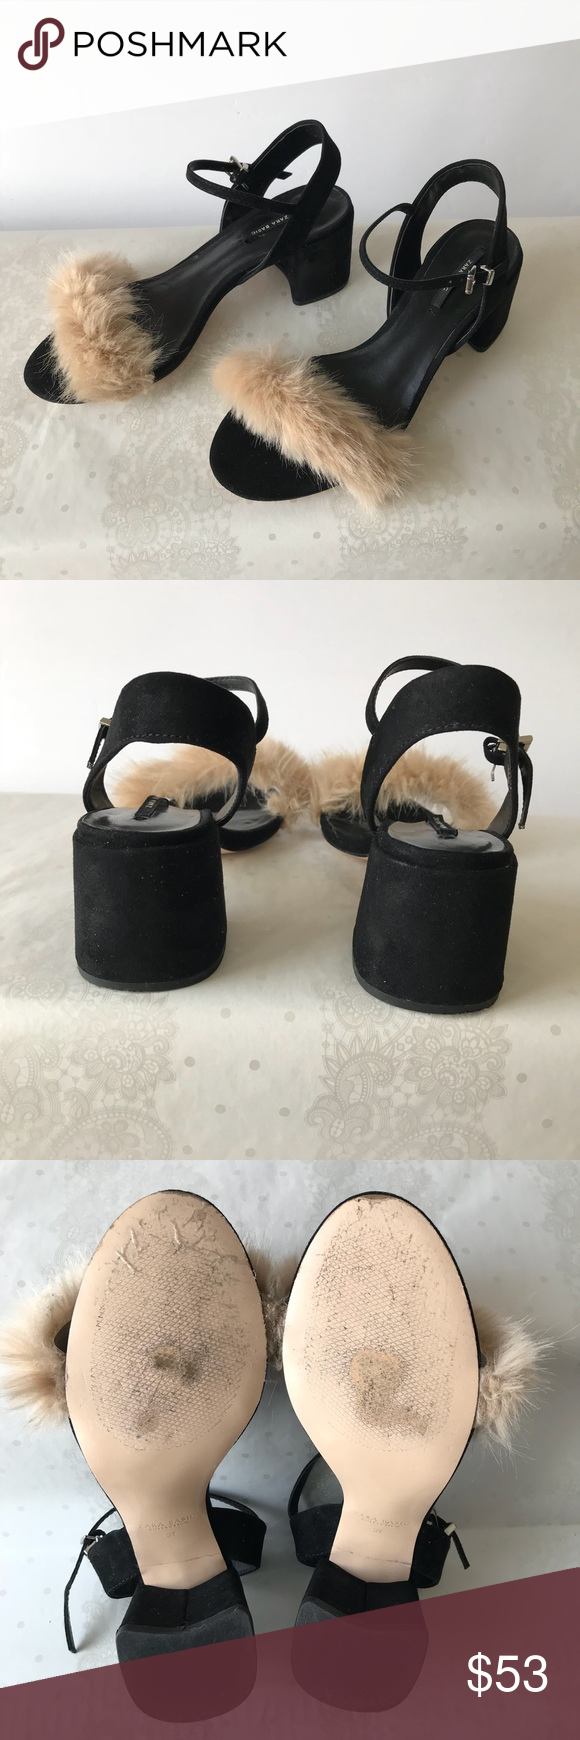 c9008e48f9b Zara Black Faux Fur Vamp Block Heel Sandals Size 7 Please see all pics  before purchasing. If you have any questions